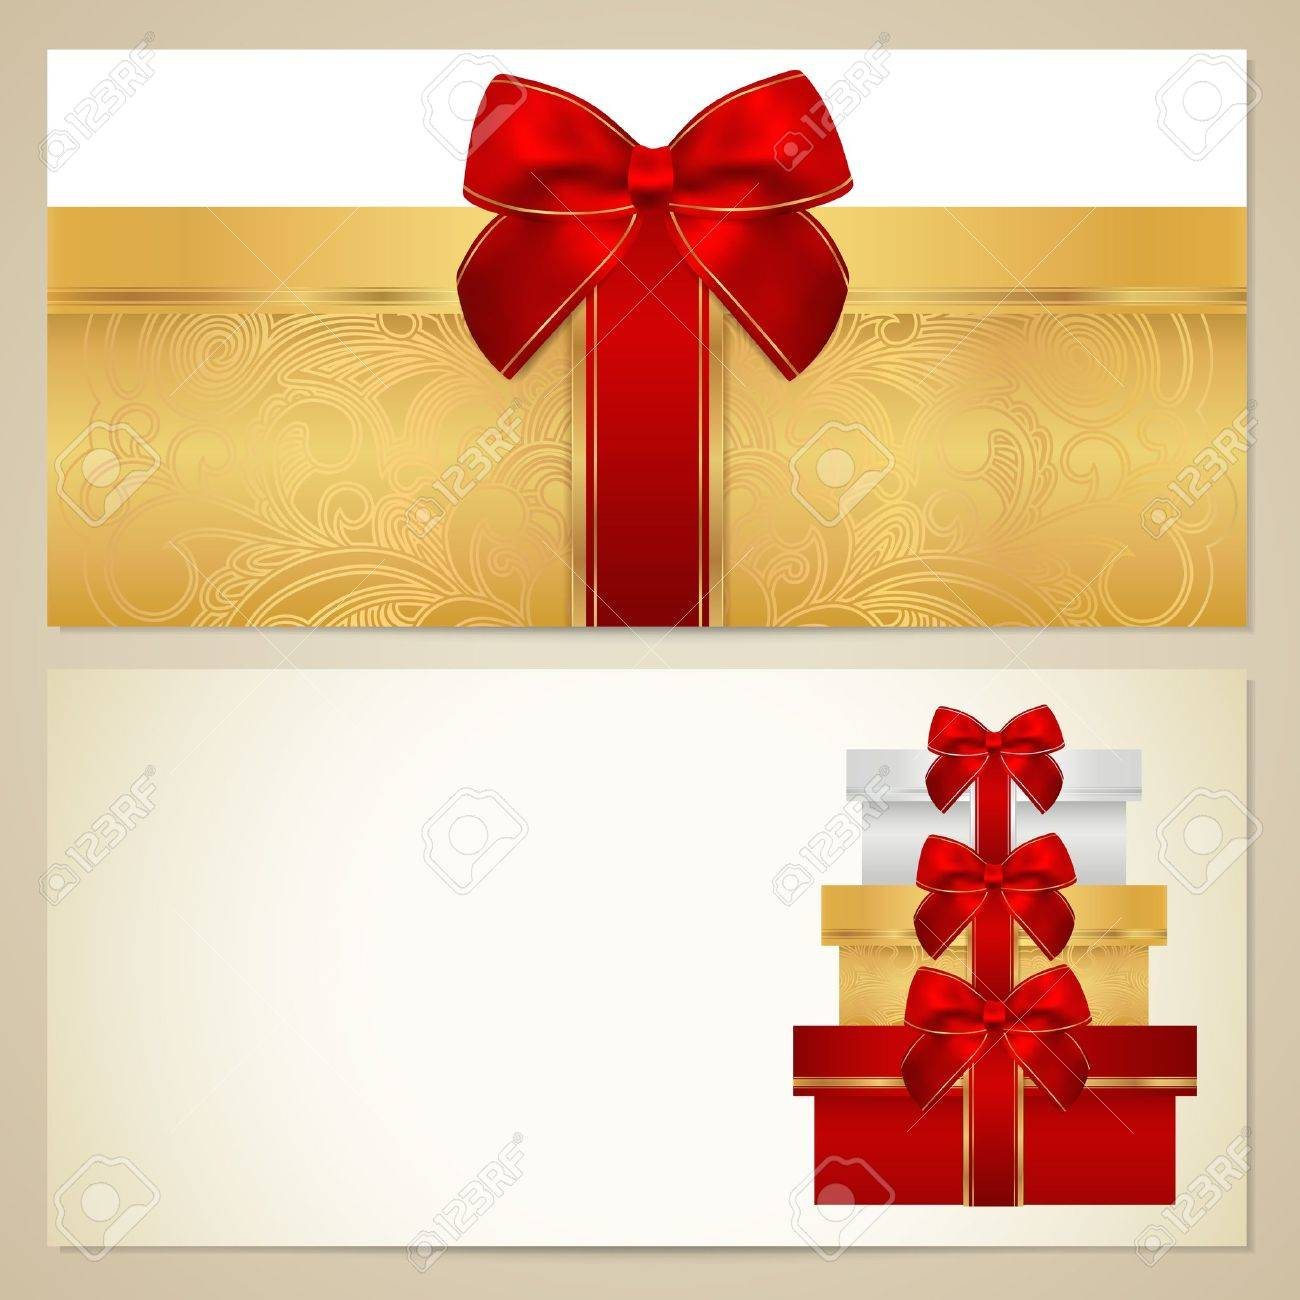 voucher gift certificate coupon template present boxes voucher gift certificate coupon template present boxes bow